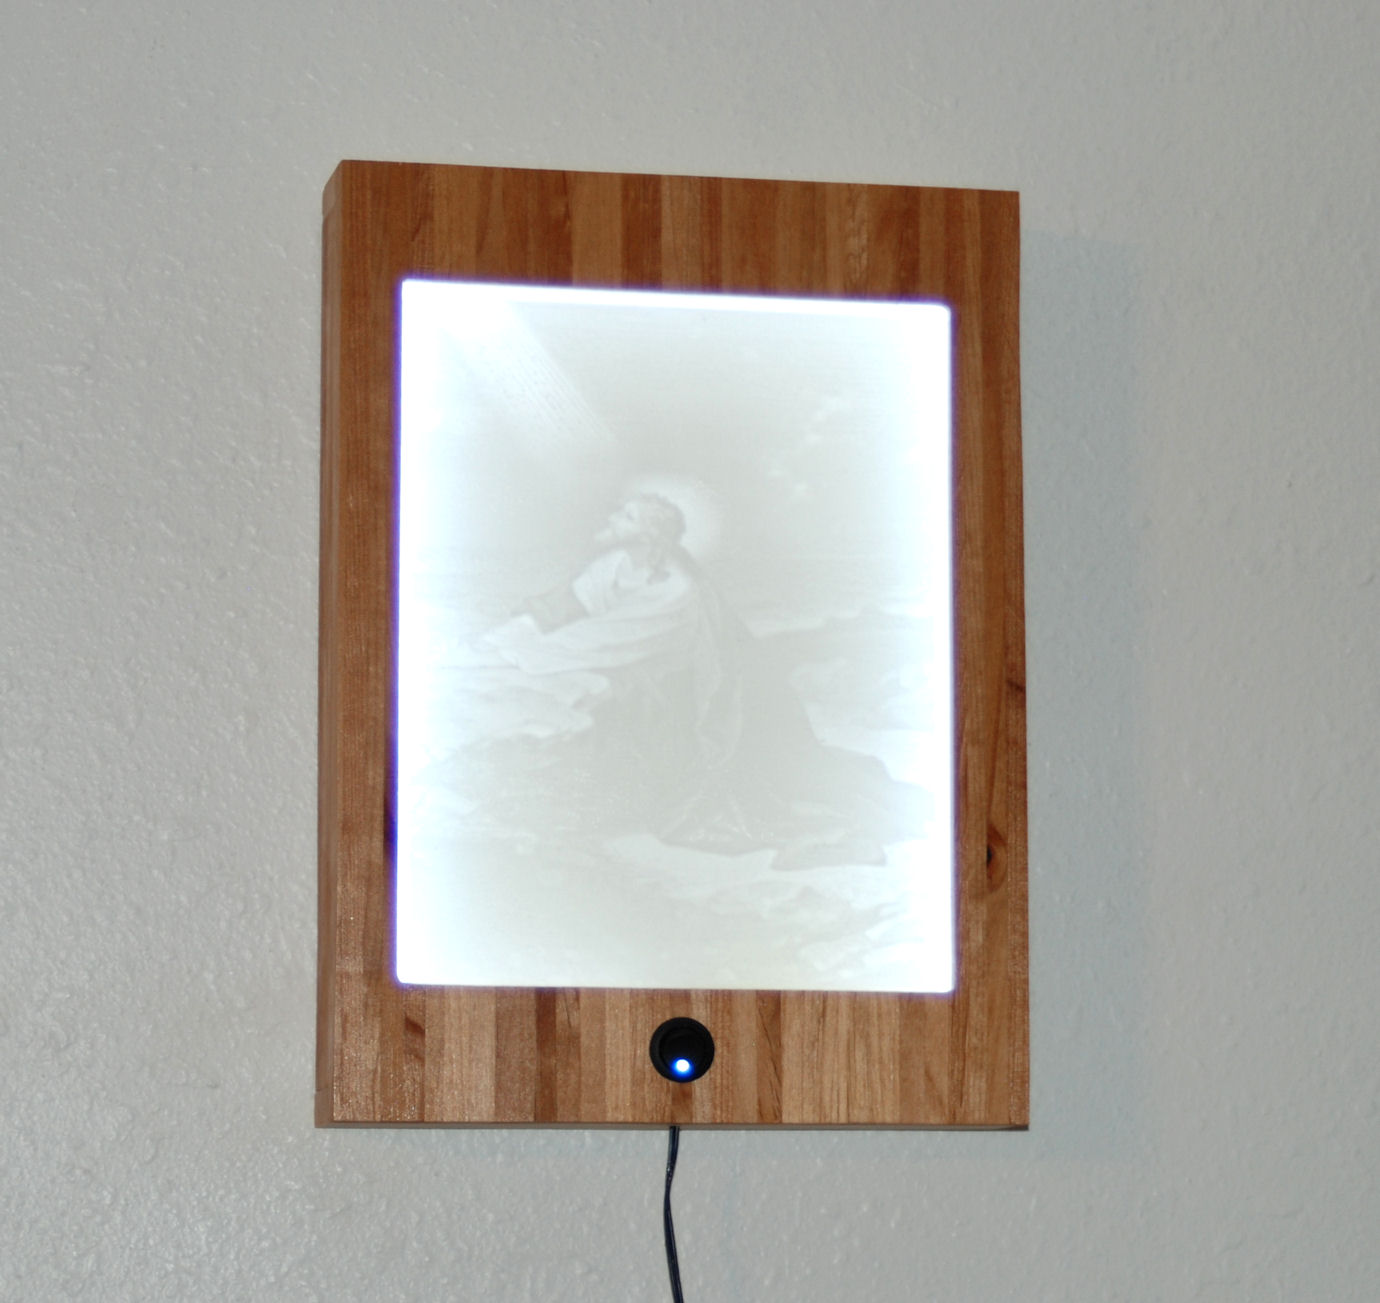 Jesus praying lithophane